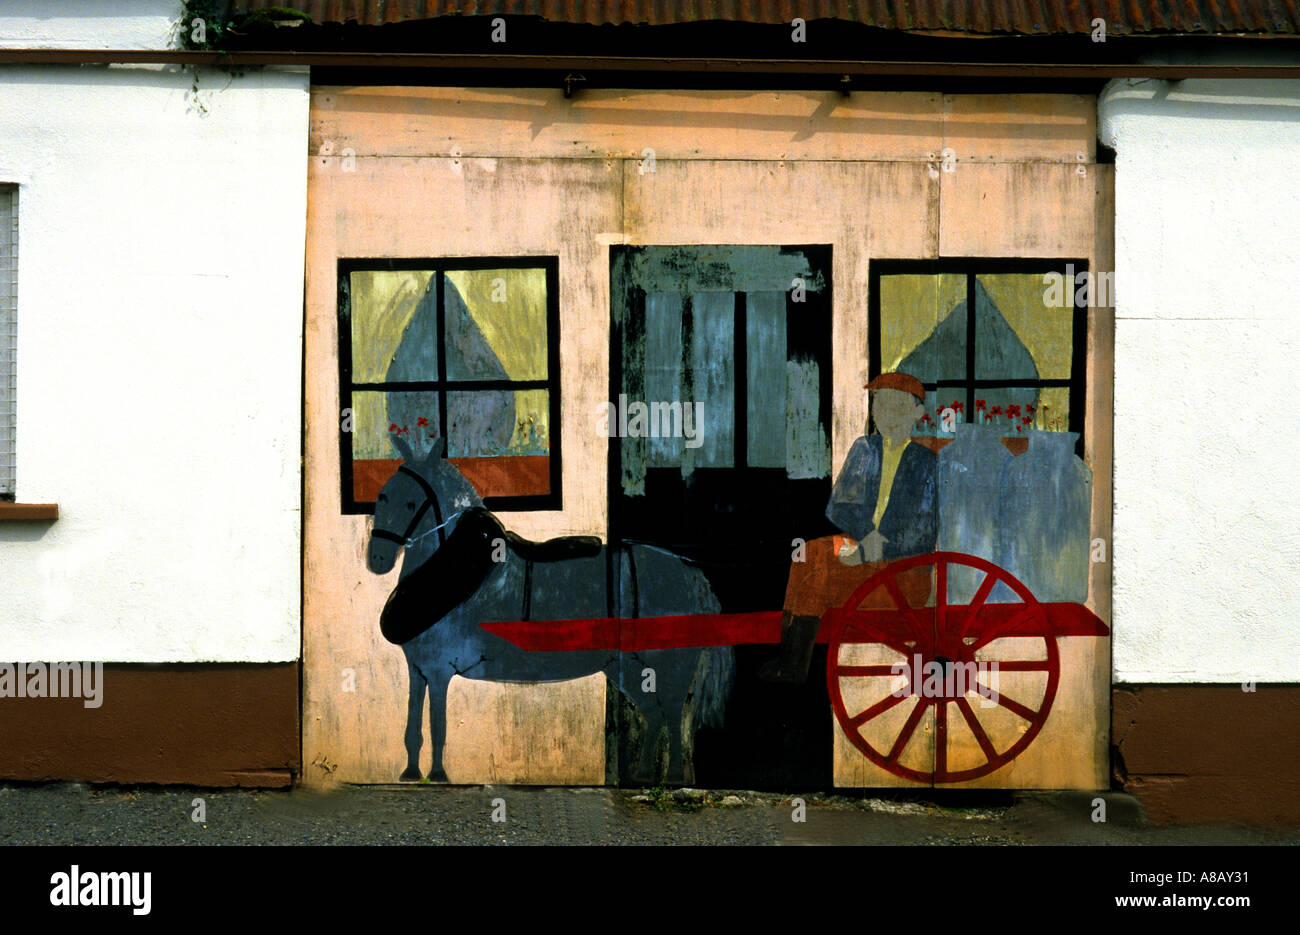 PRIMATIVE  BUT CHARMING  WALL PAINTING ON A GARAGE DOOR IN IRELAND FEATURING DONKEY AND CART - Stock Image